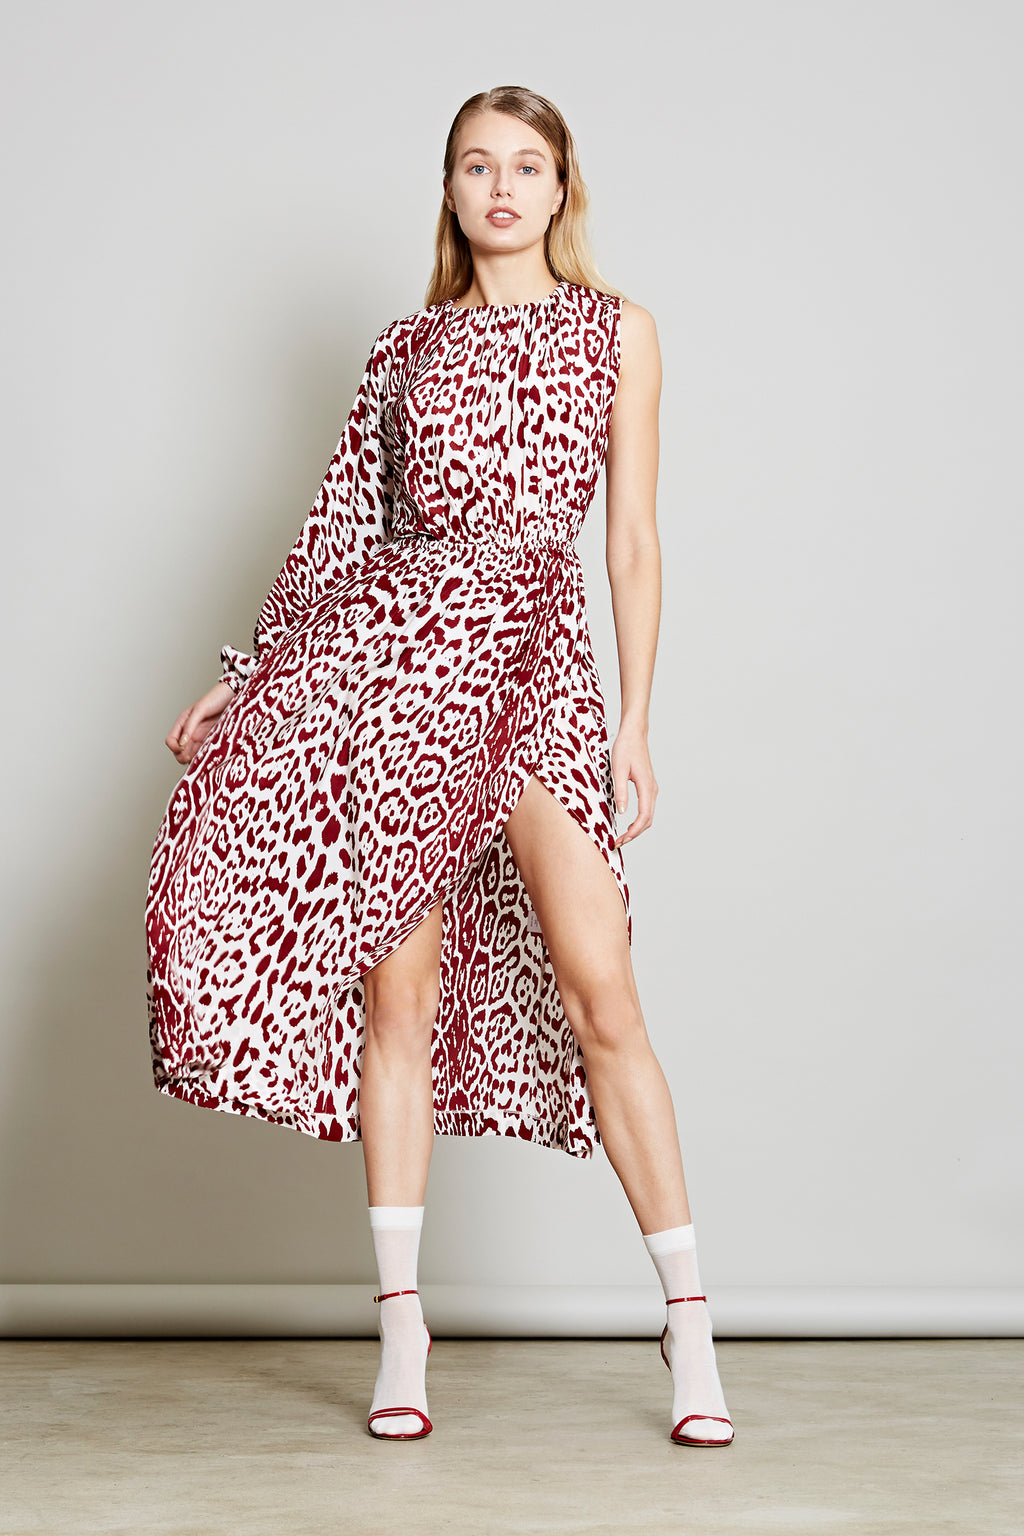 Robert Rodriguez Studio Women's Fashion Designer Resort 2018 Leopard Print Silk Dress